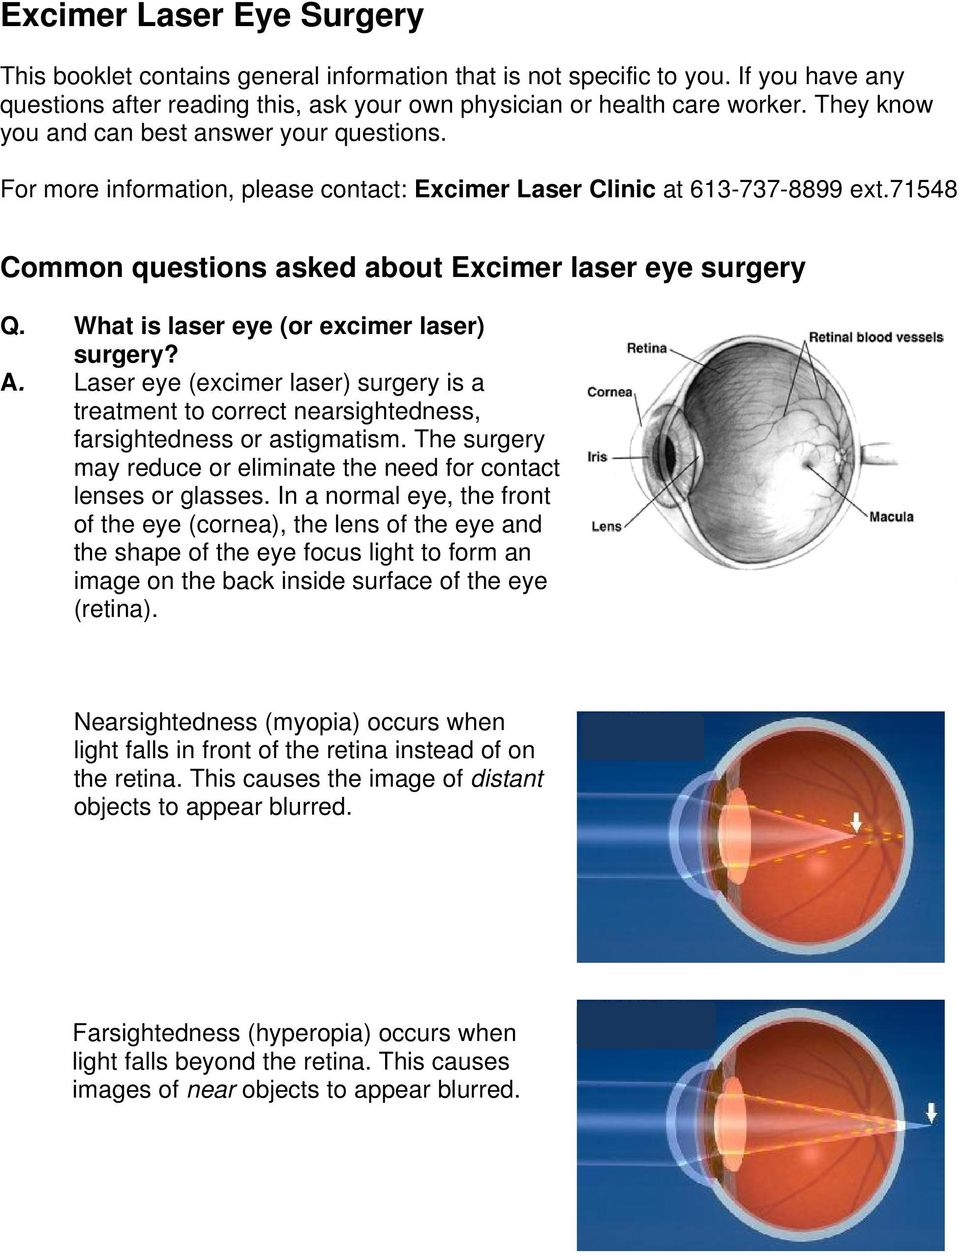 What is laser eye (or excimer laser) surgery? A. Laser eye (excimer laser) surgery is a treatment to correct nearsightedness, farsightedness or astigmatism.